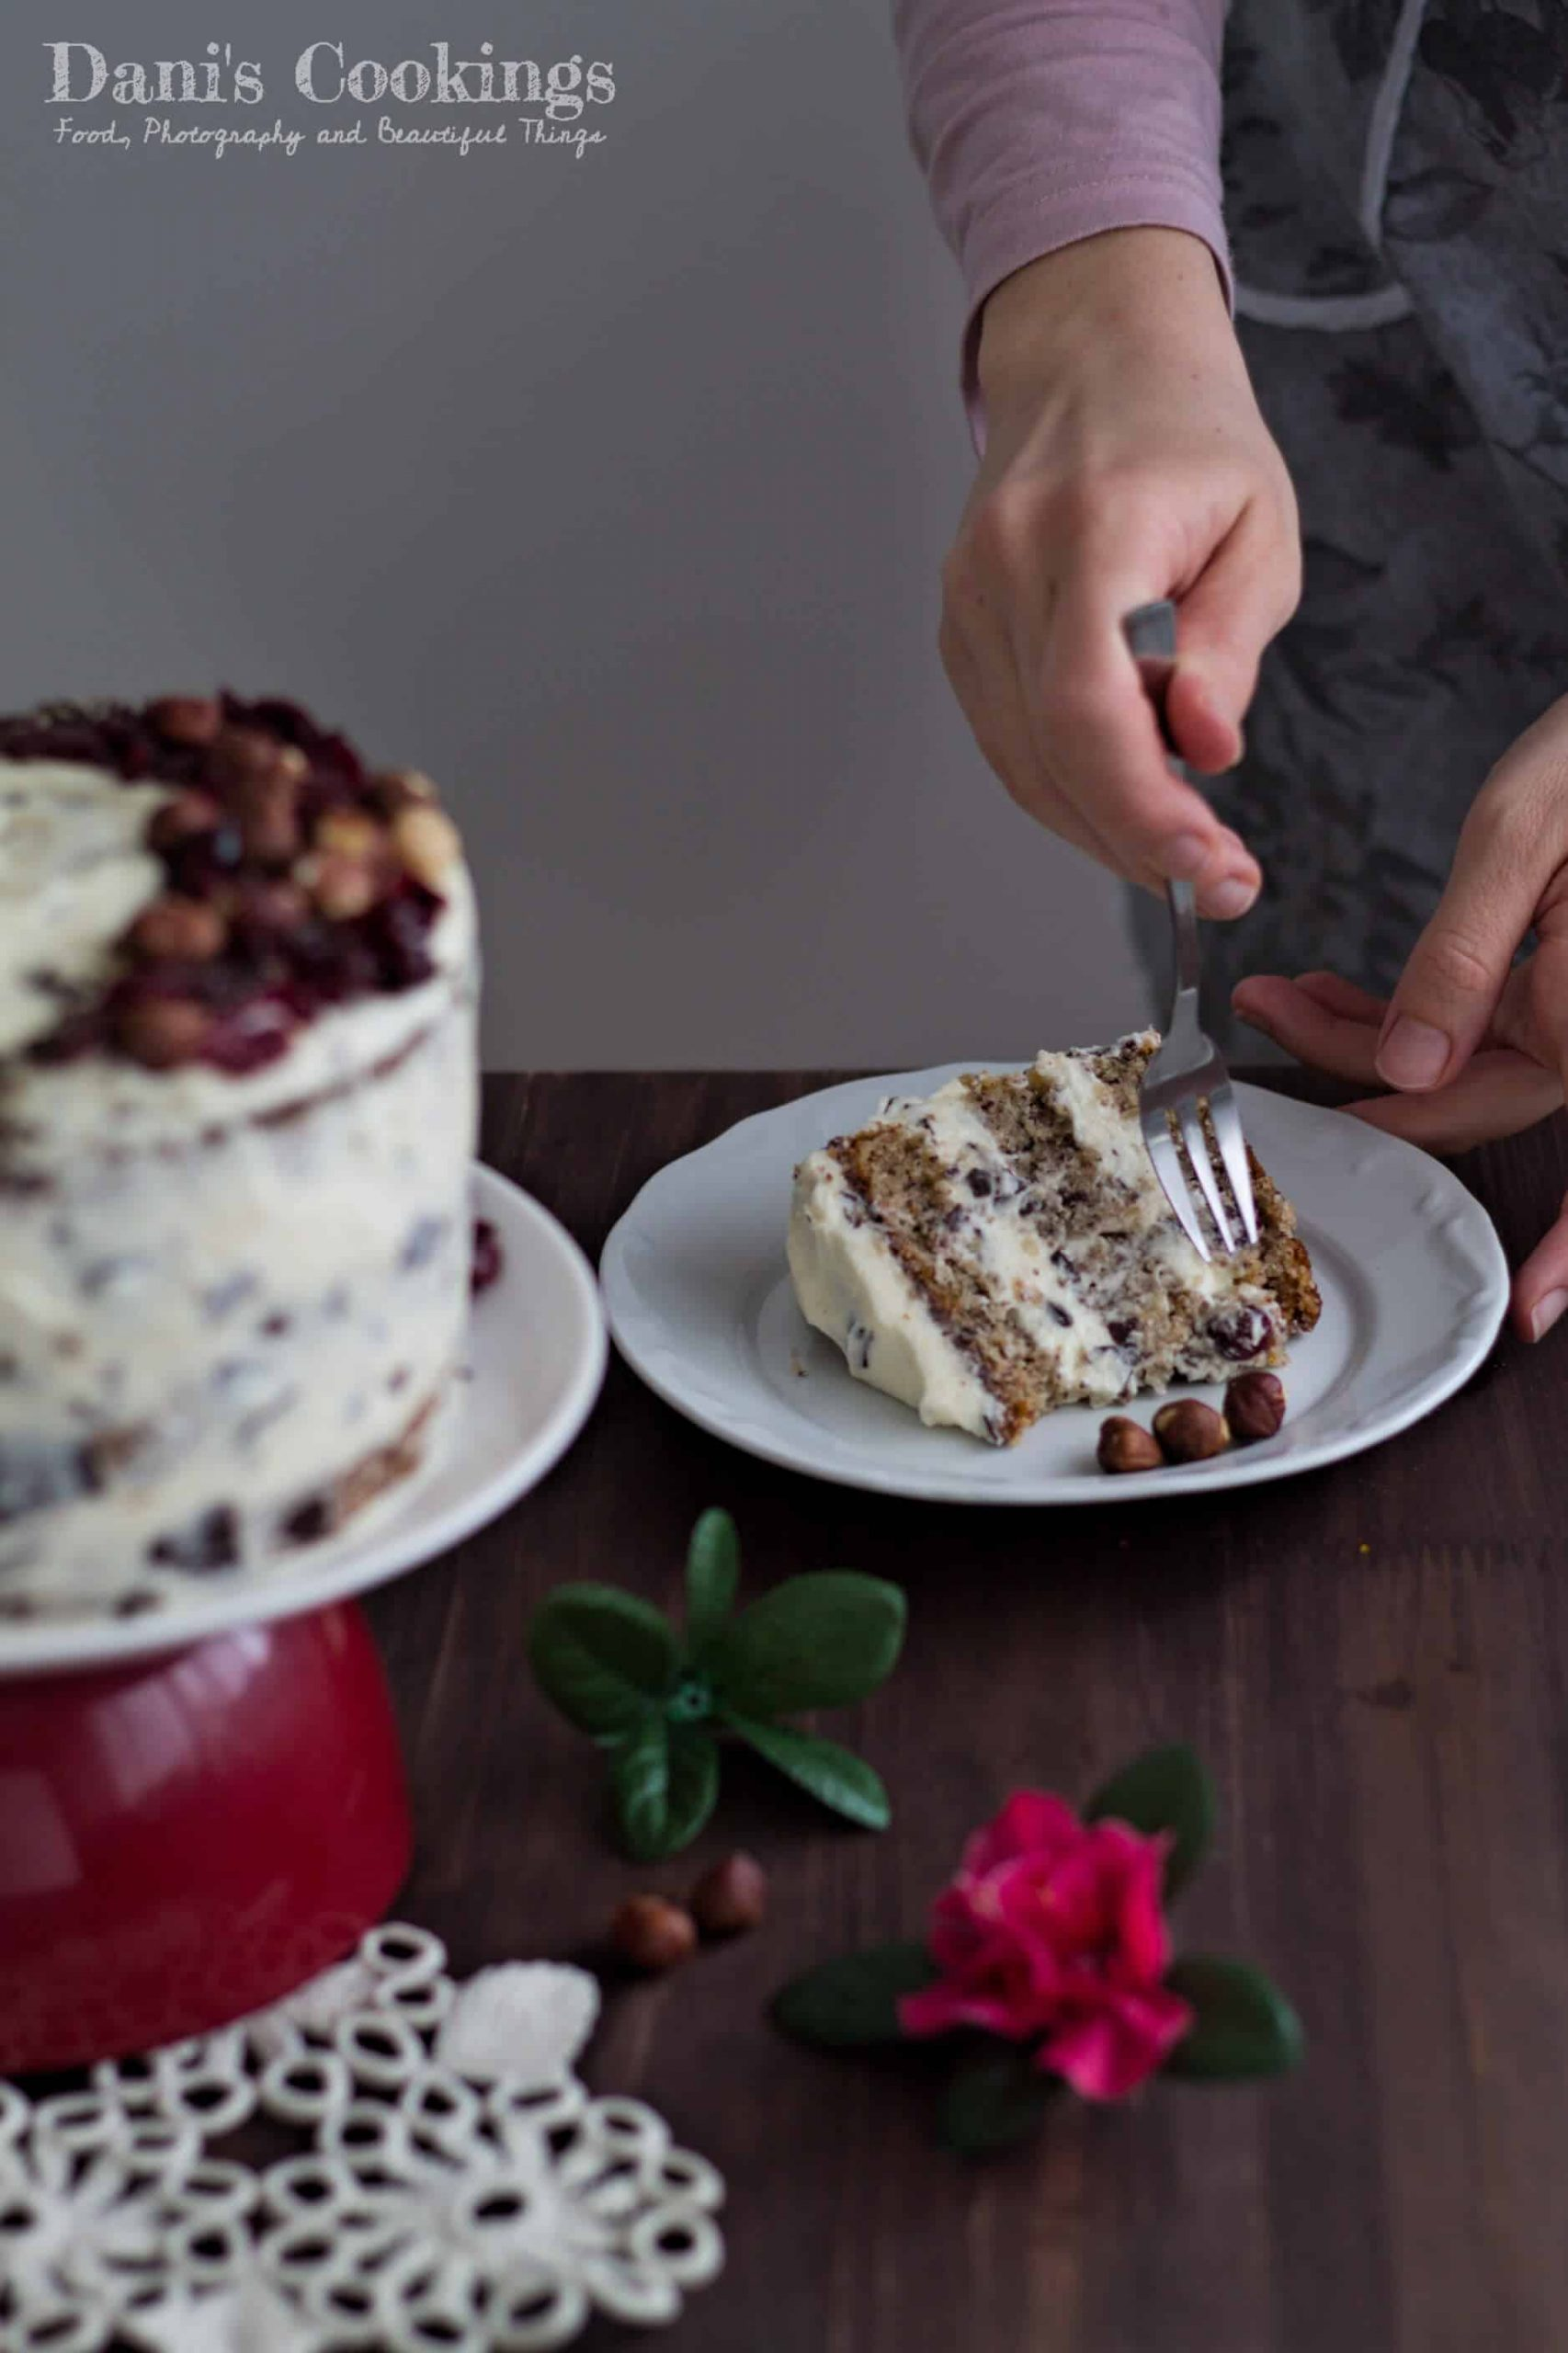 a woman eating a slice of cake